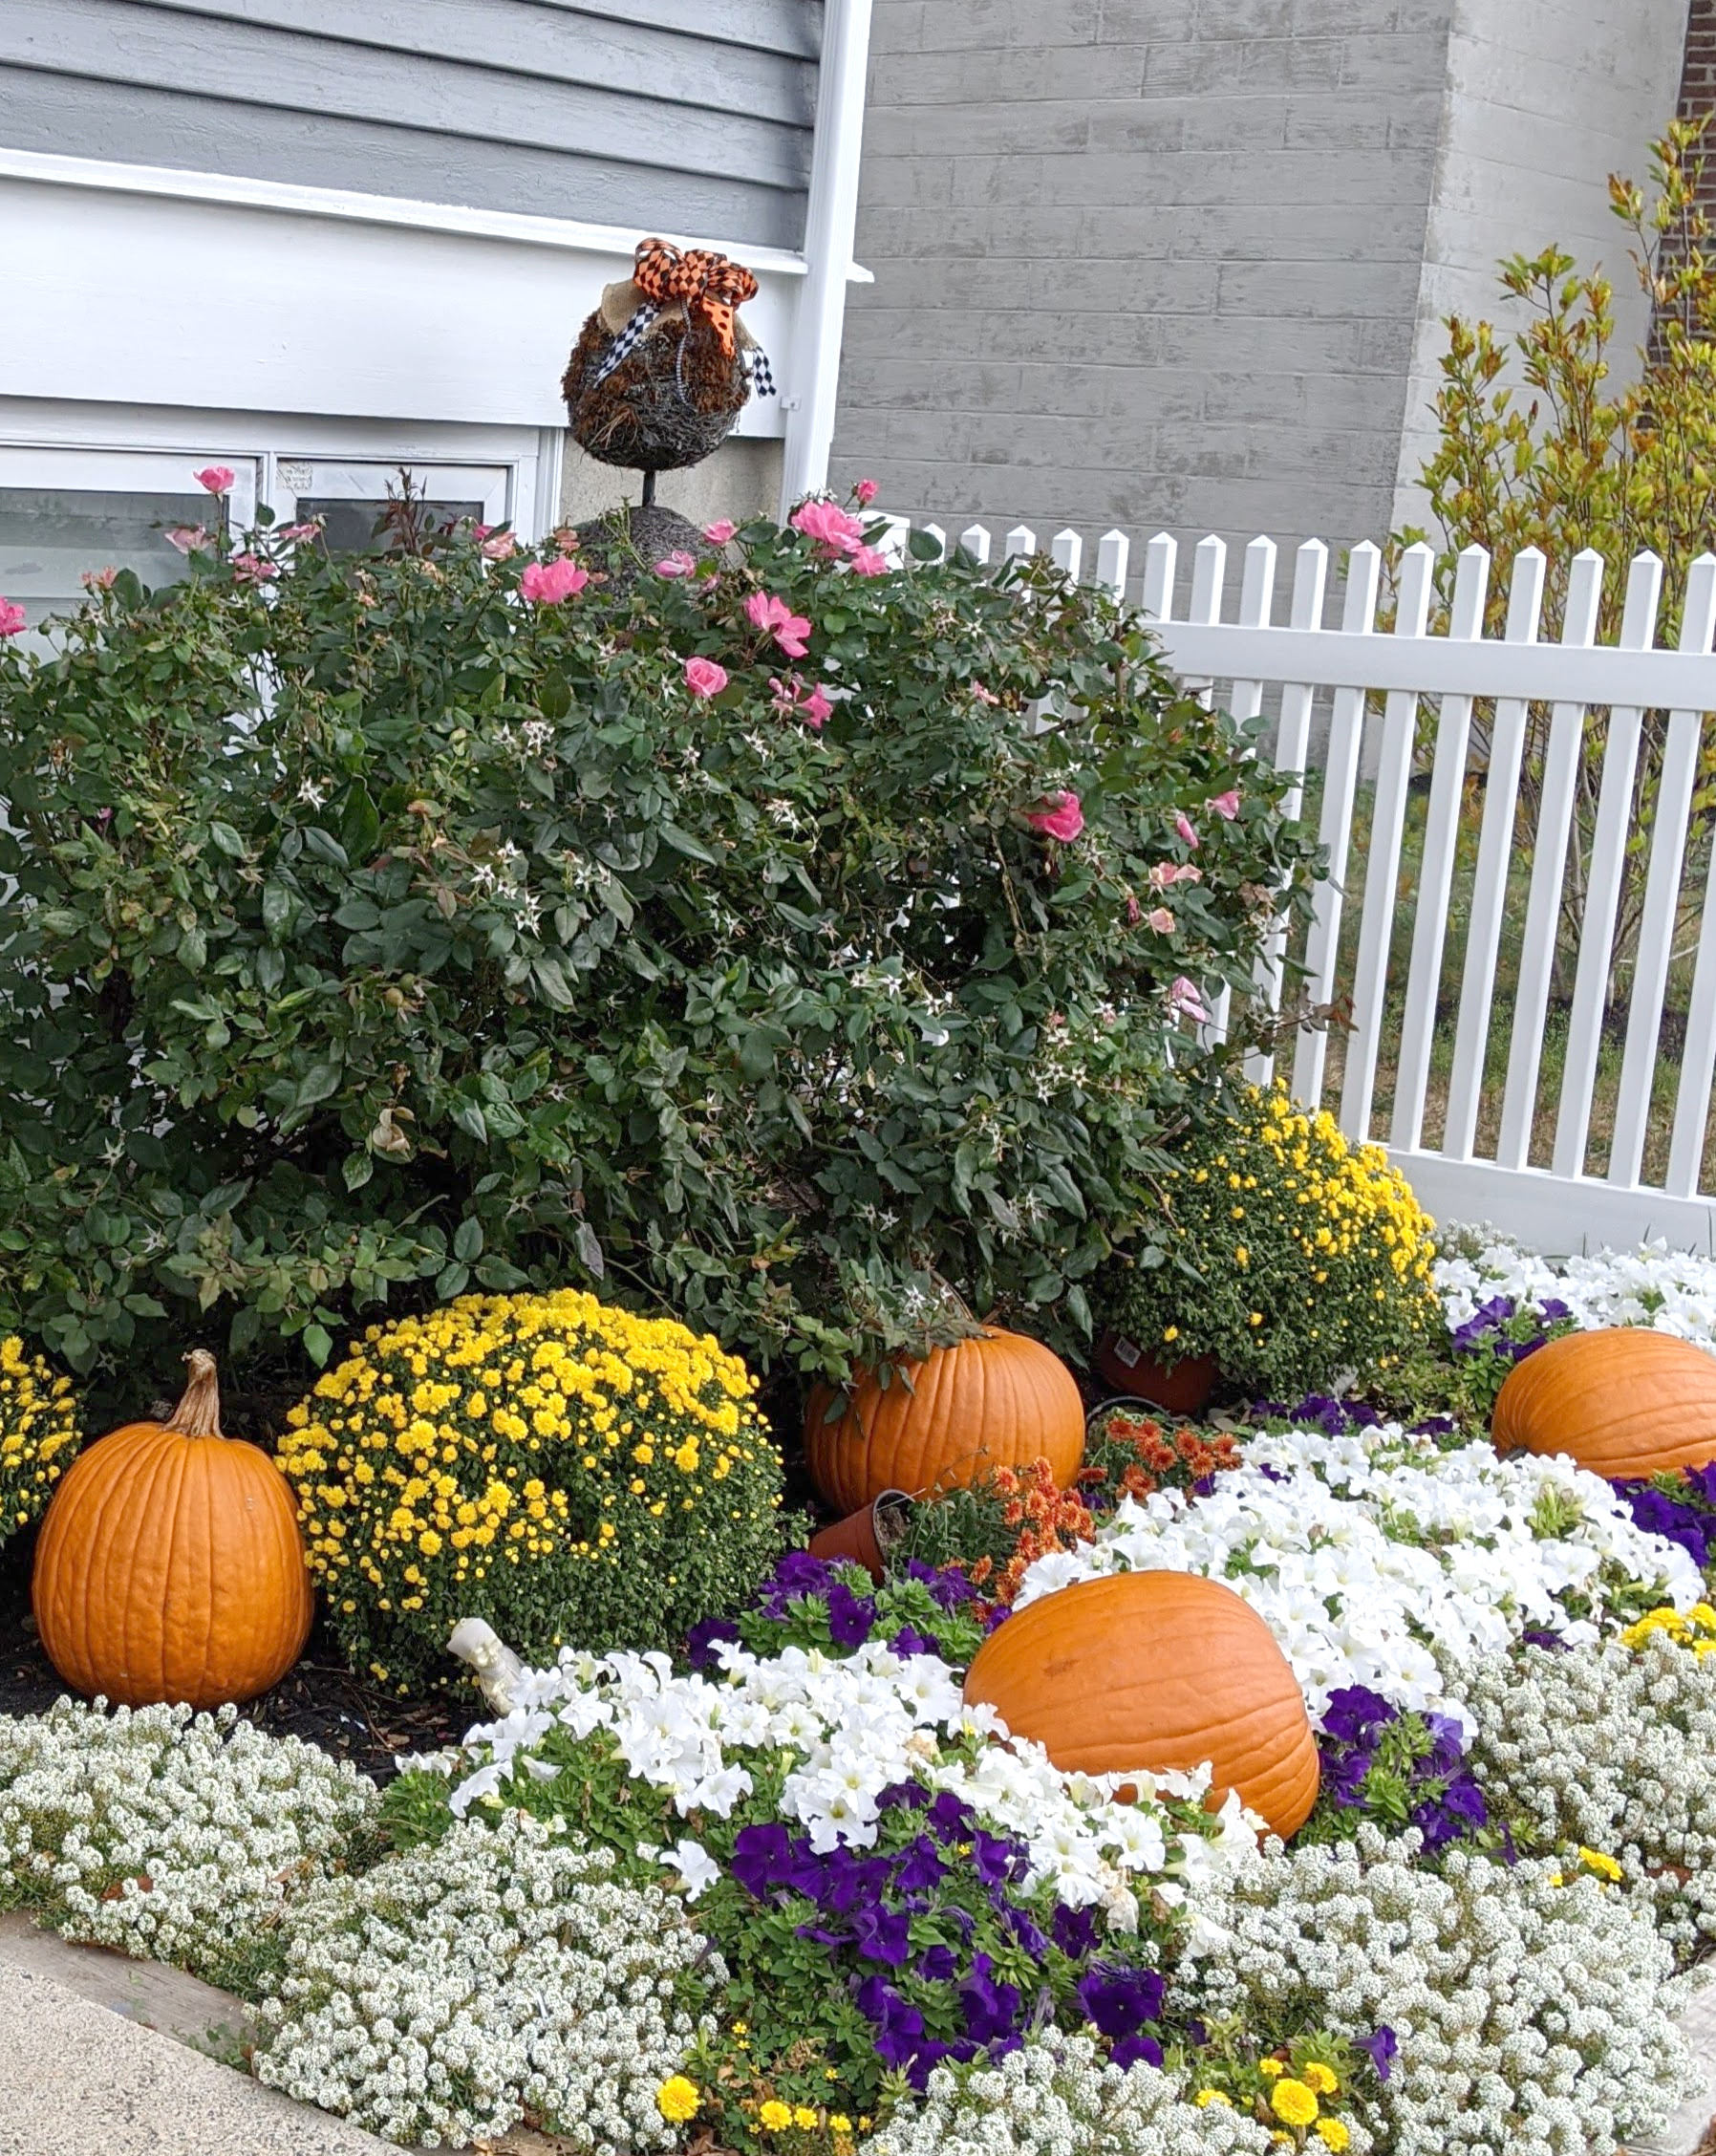 Pumpkins and mums decorate a yard for fall.